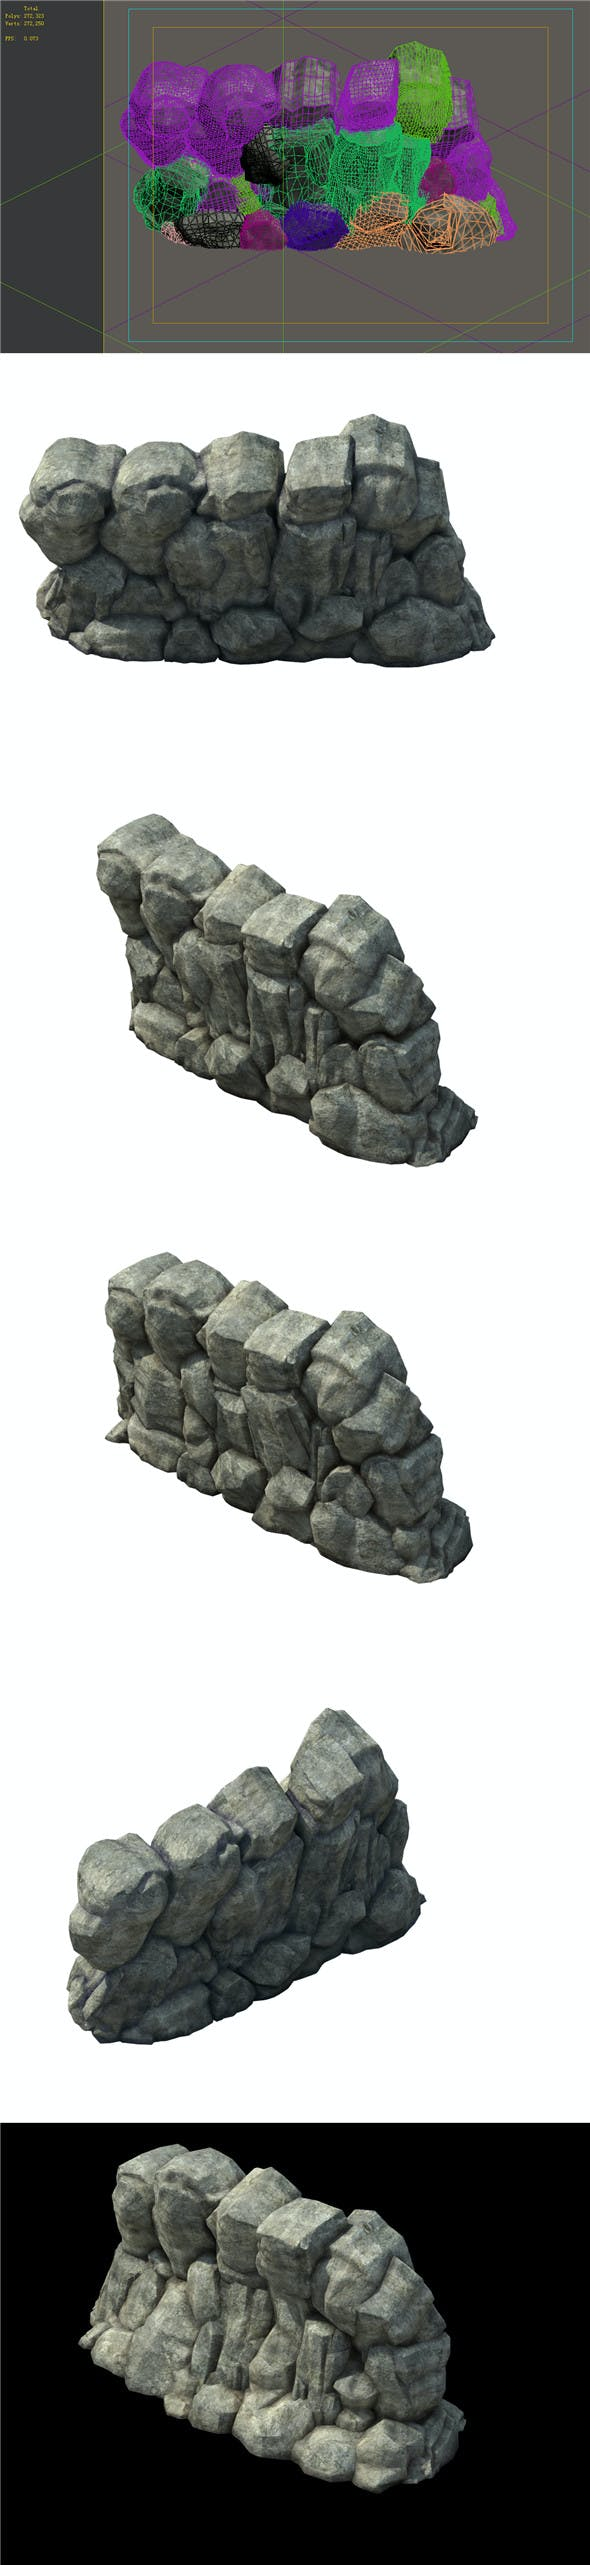 Game Model - prairie scene - grass stone 02 01 - 3DOcean Item for Sale